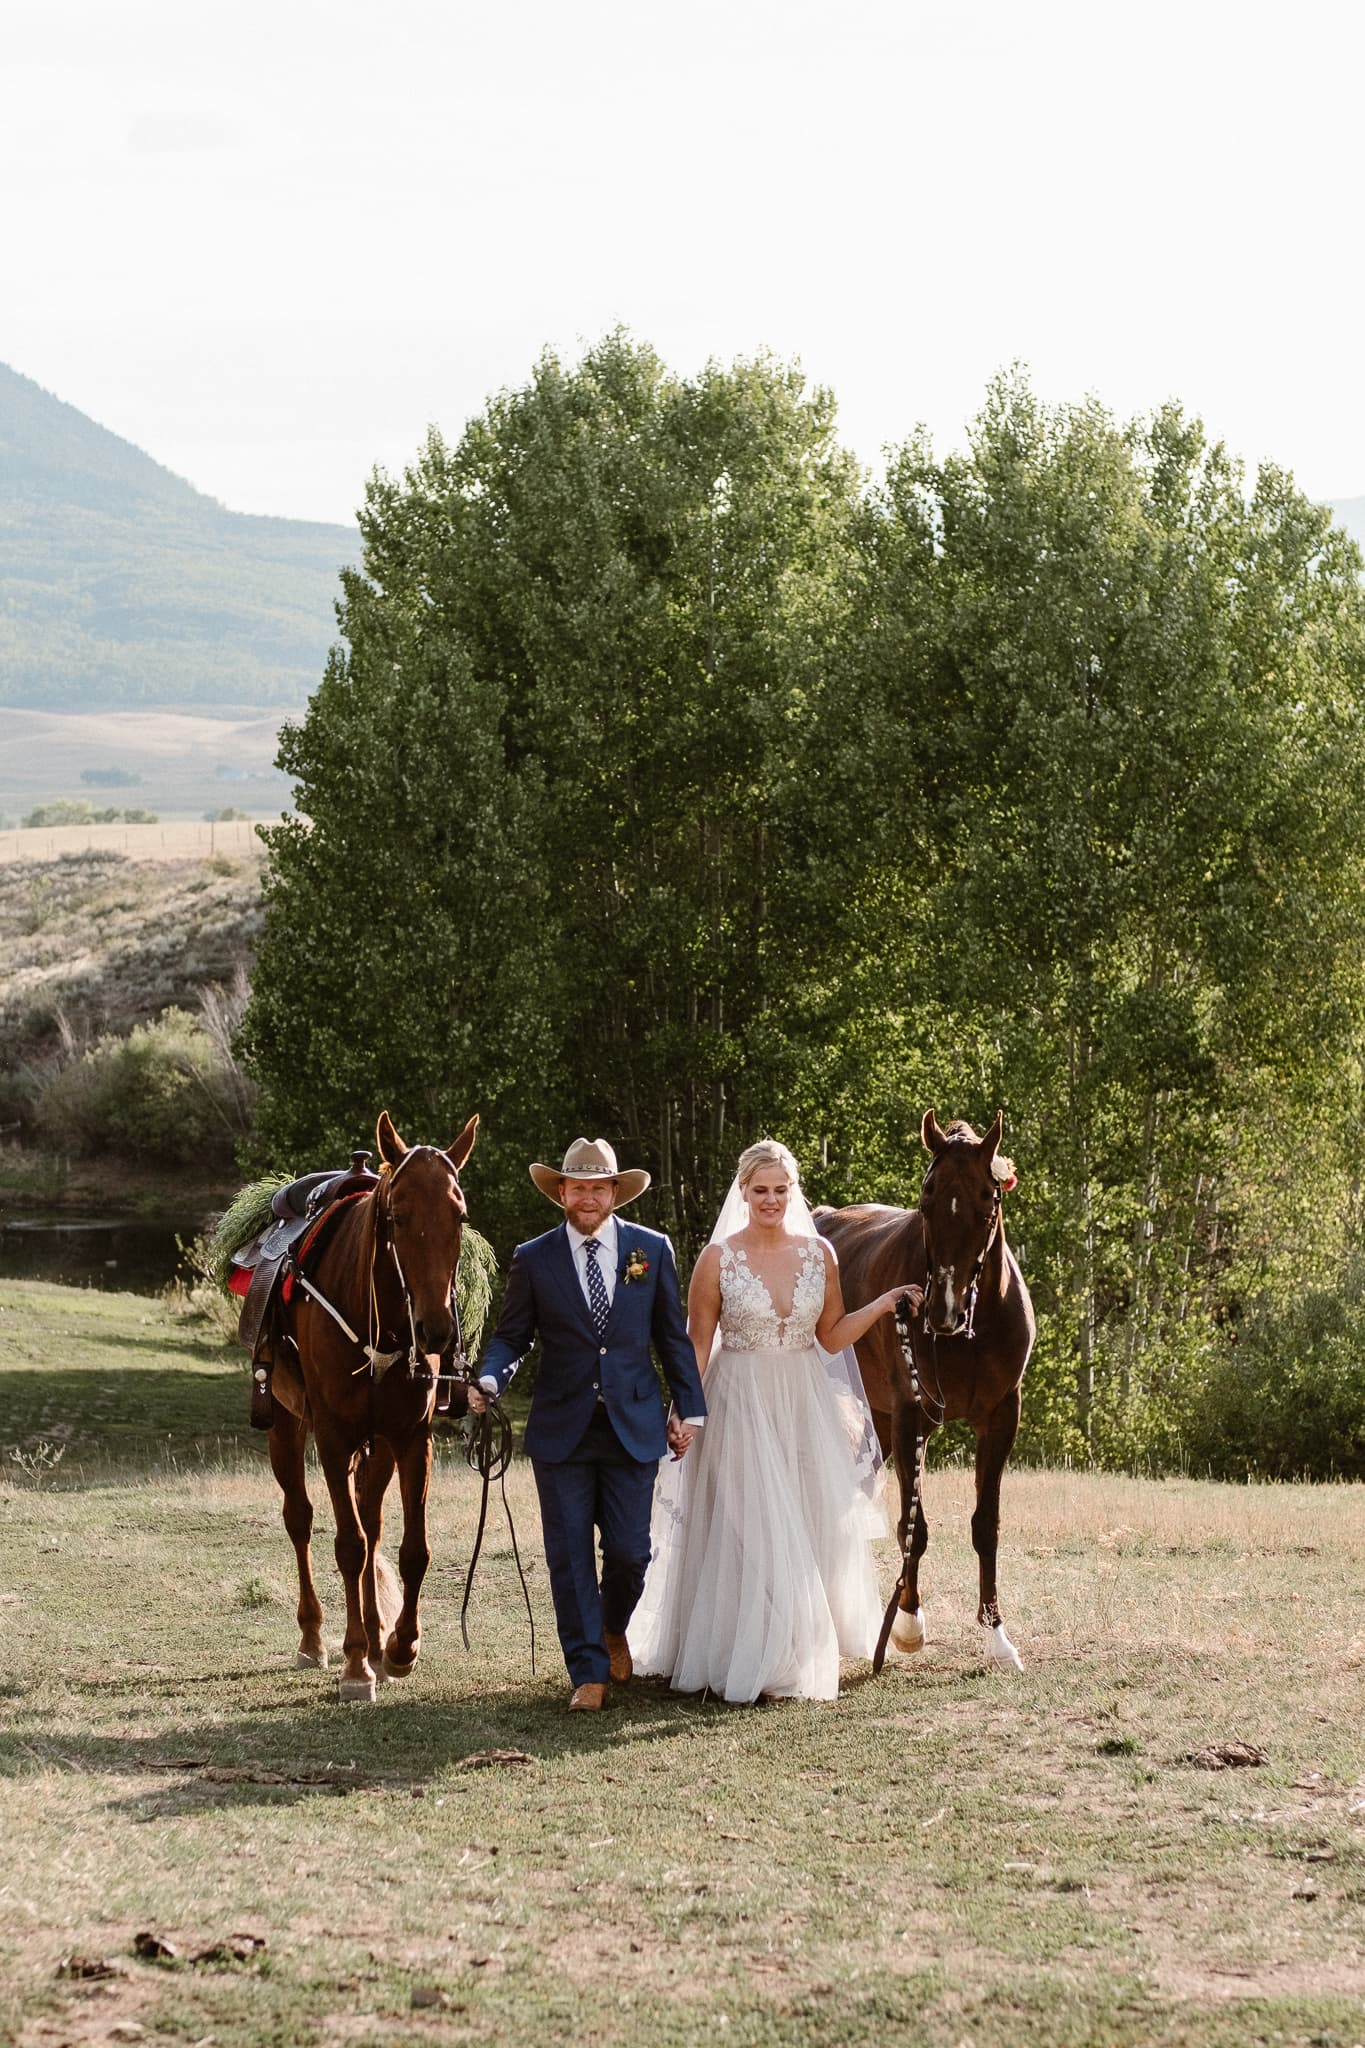 Steamboat Springs wedding photographer, La Joya Dulce wedding, Colorado ranch wedding venues, outdoor wedding ceremony, Colorado wedding, Rocky Mountain wedding, ranch wedding, bride and groom walking with horses